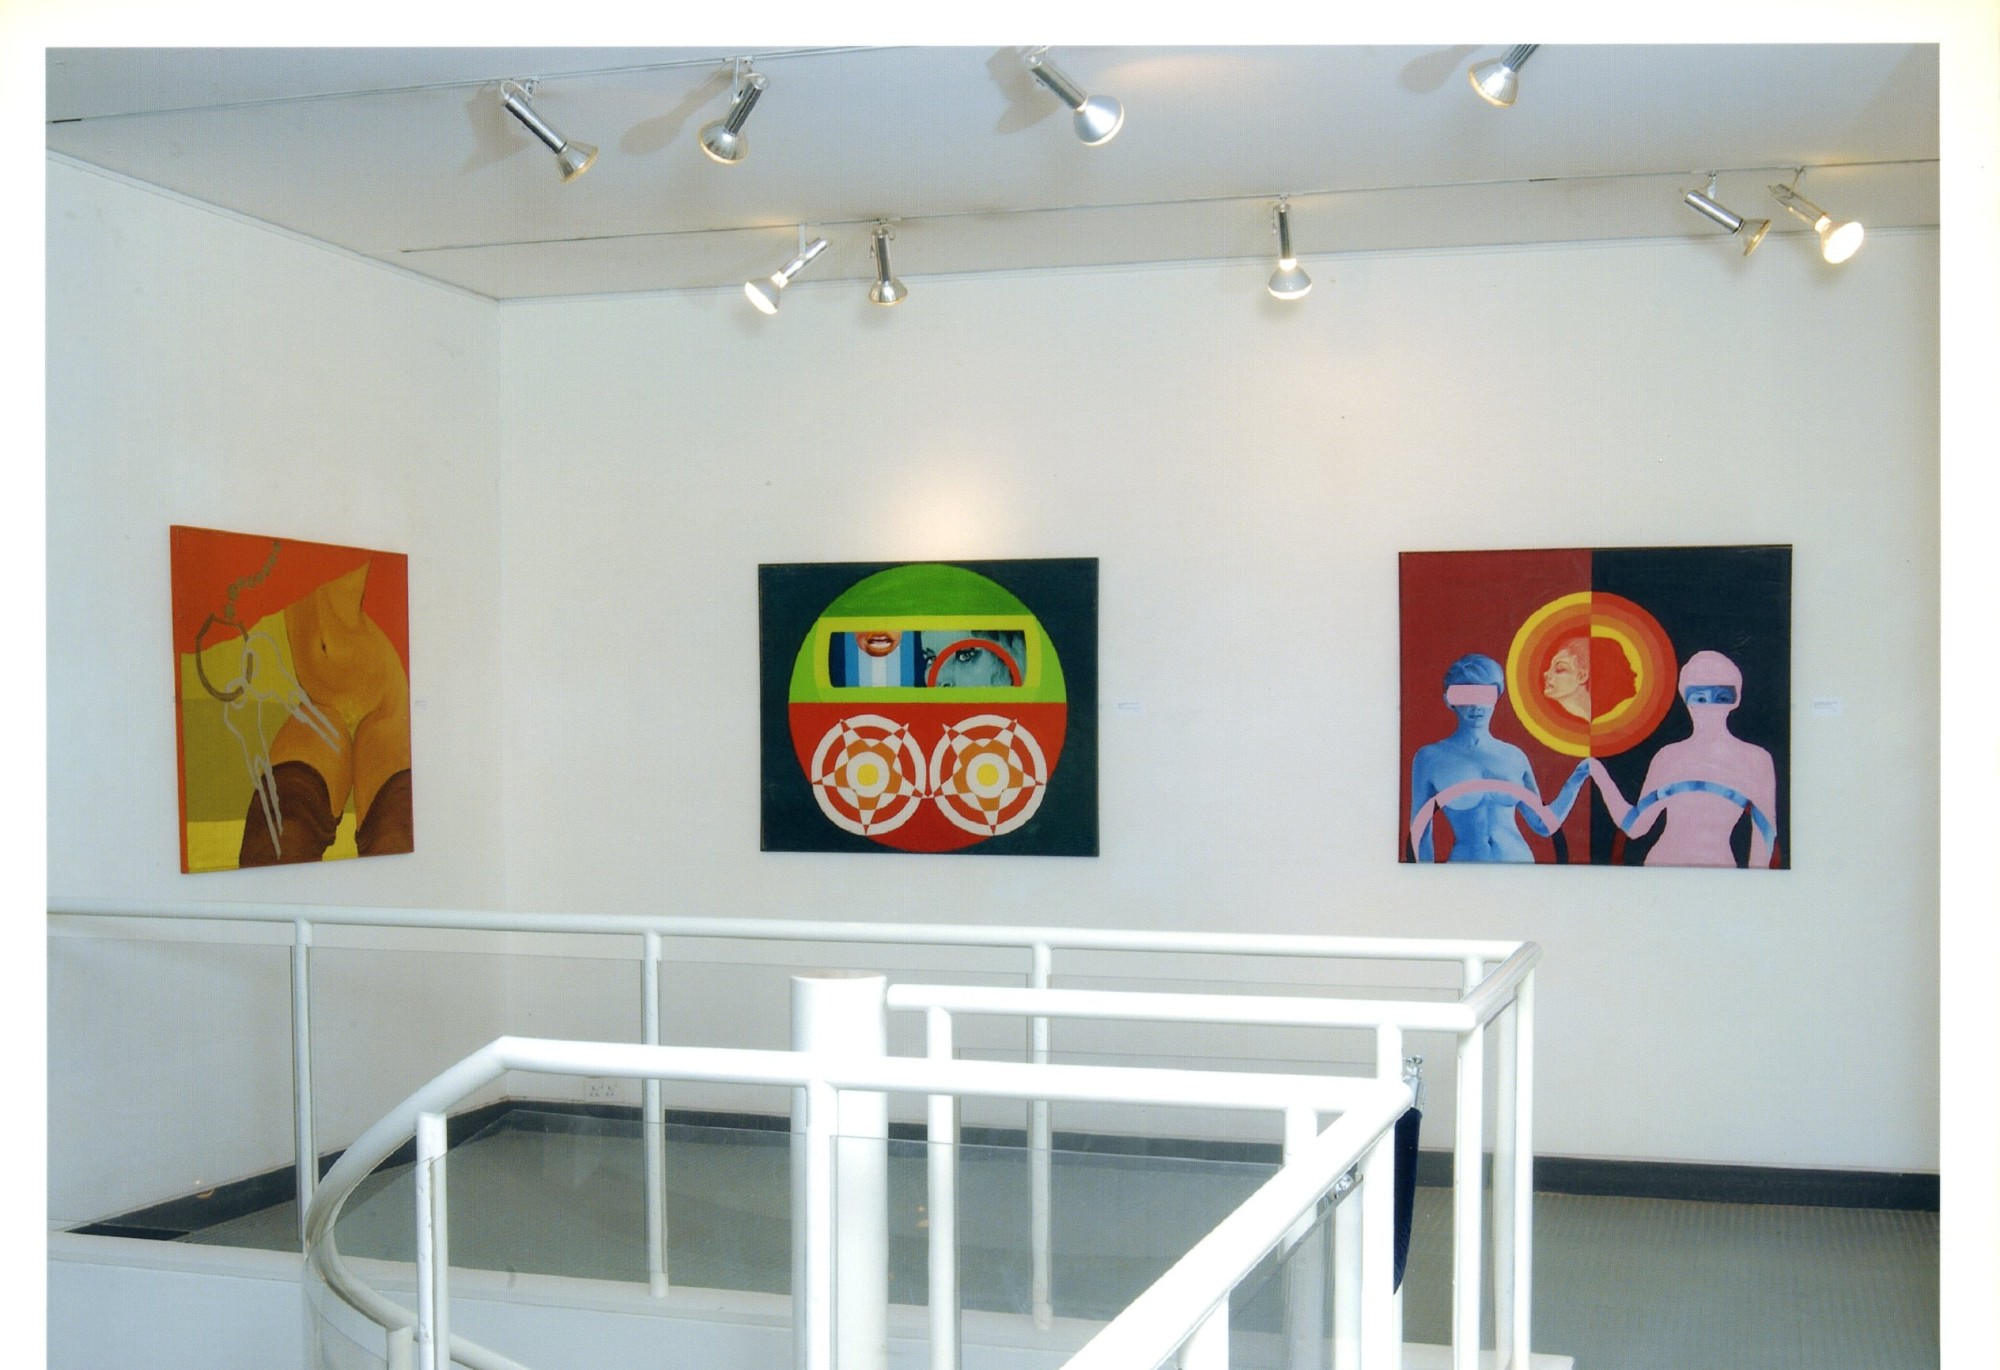 """<span class=""""link fancybox-details-link""""><a href=""""/exhibitions/119/works/image_standalone505/"""">View Detail Page</a></span><p>EVELYNE AXELL   FROM POP ART TO PARADISE   24 MAR - 4 JUL 2005   Installation View</p>"""